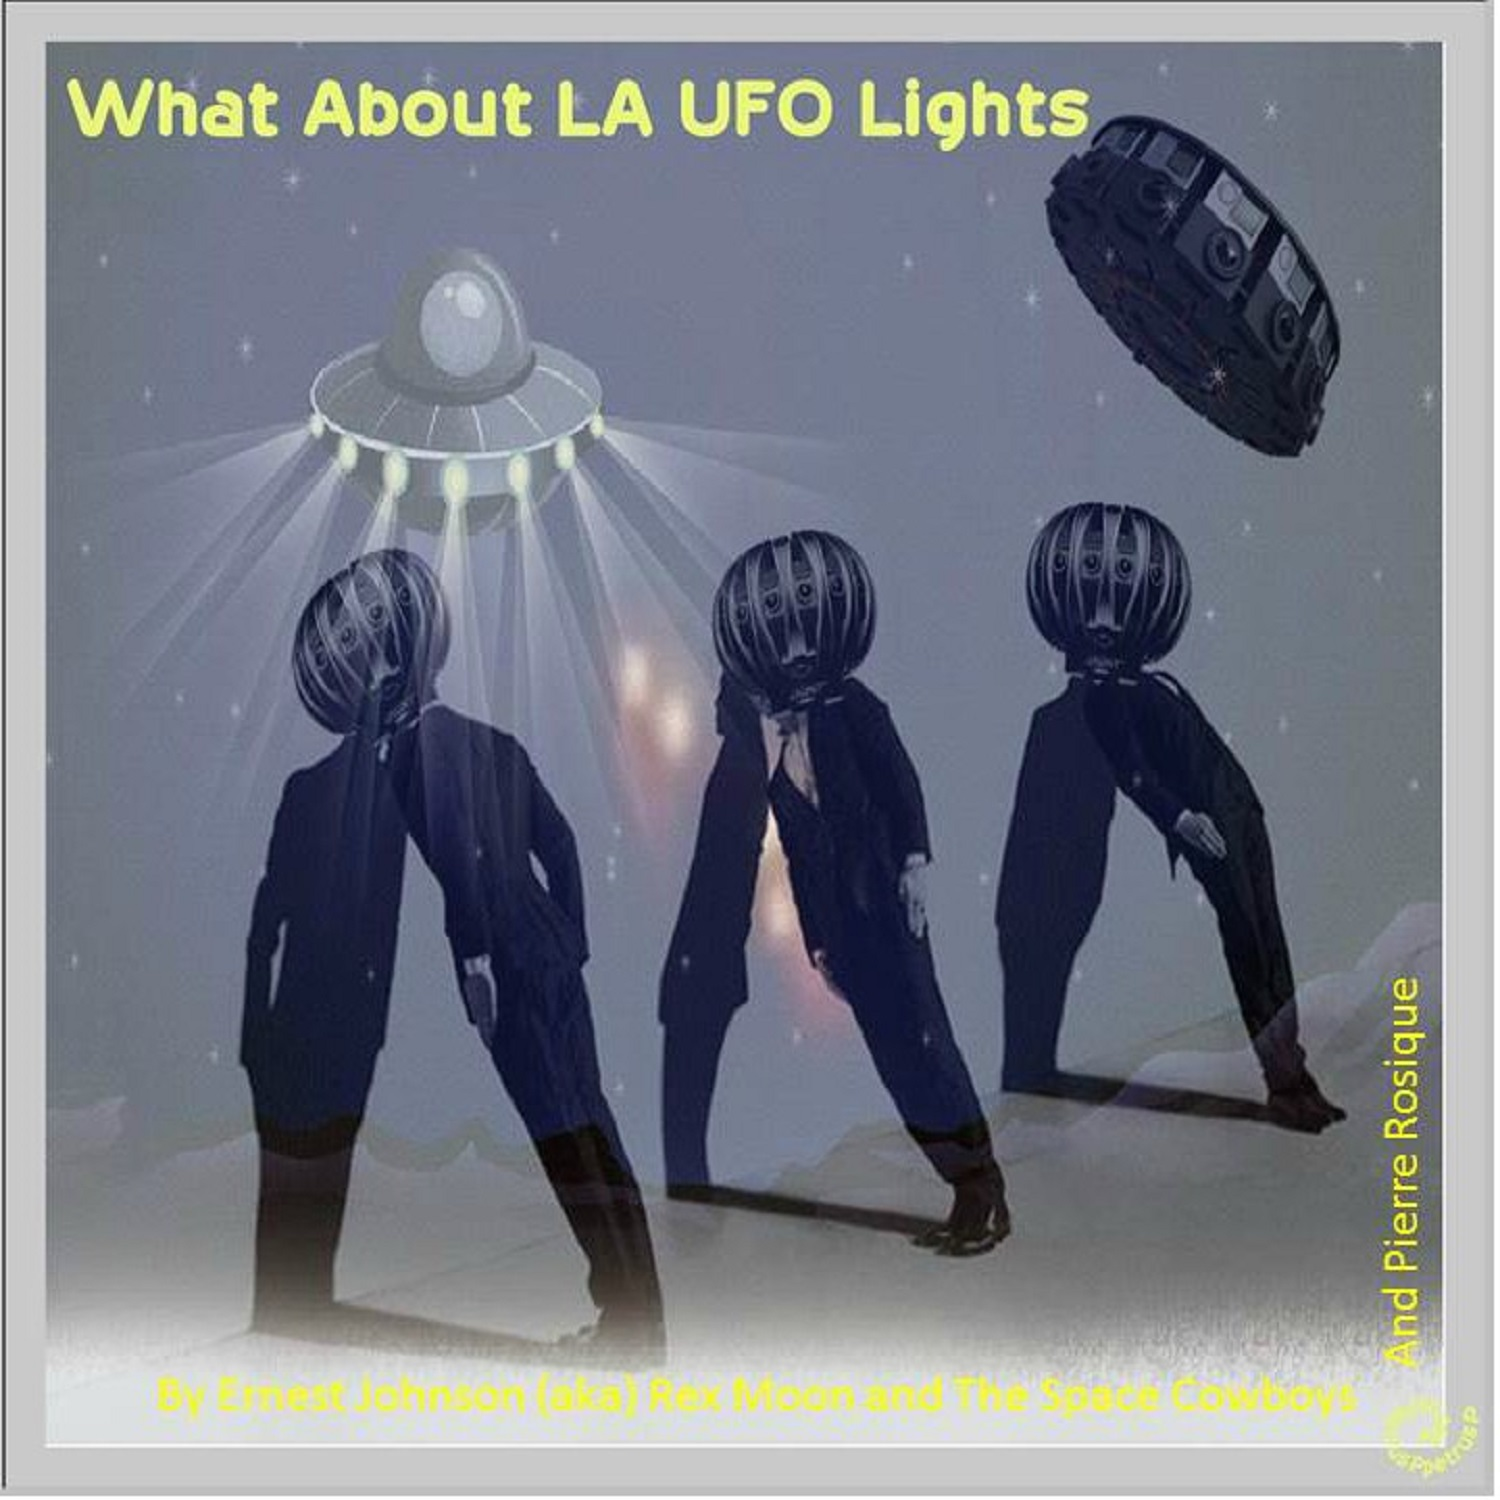 What About La UFO Lights.jpg